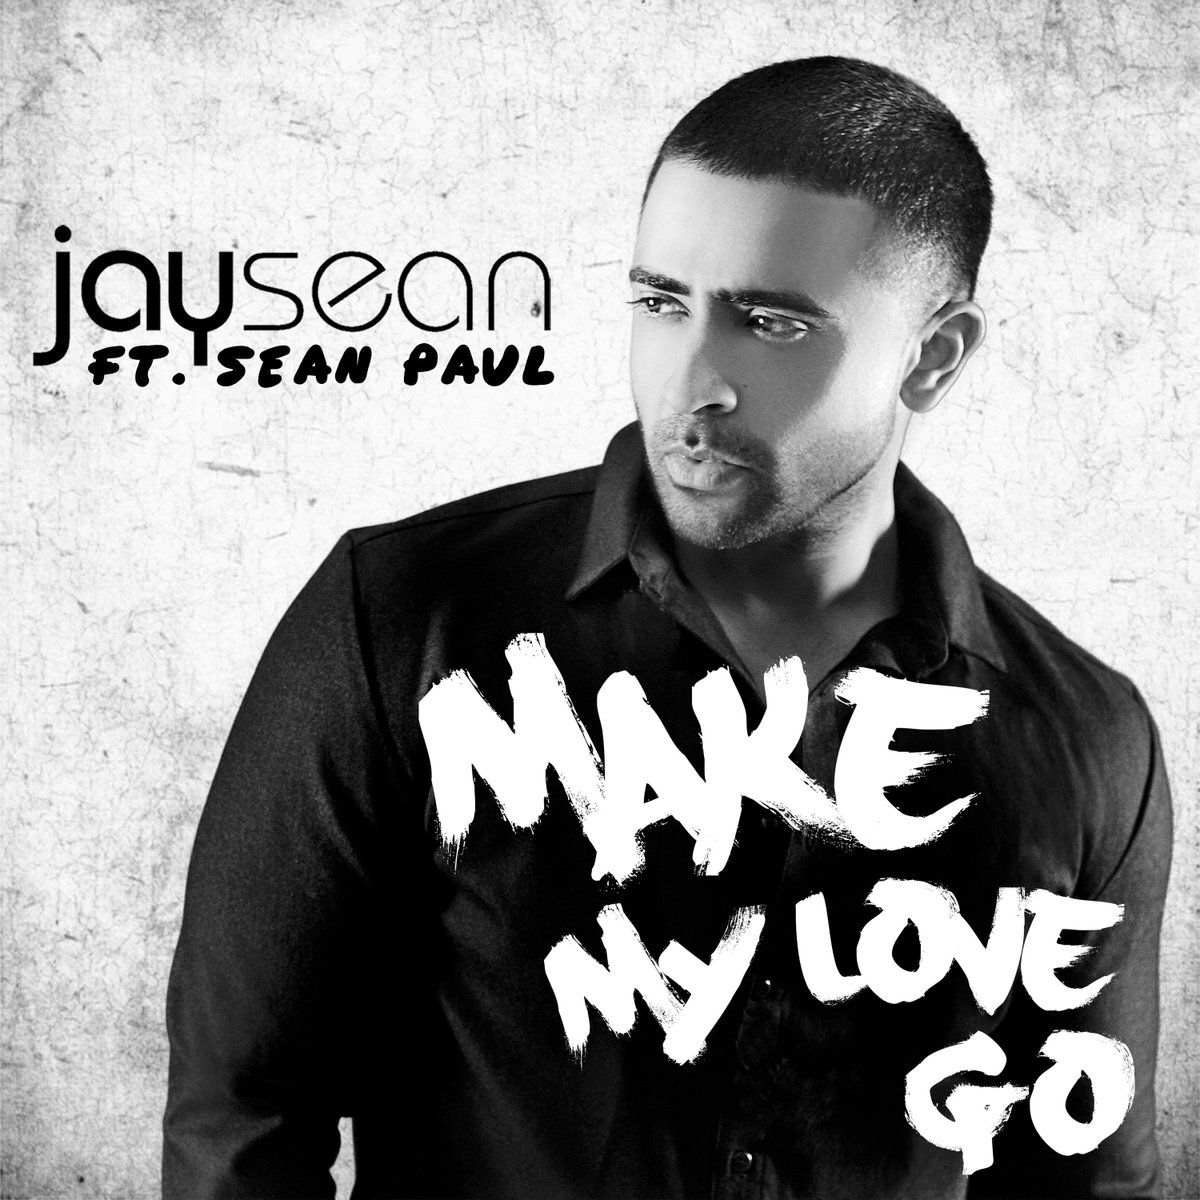 1 more day until @jaysean #MakeMyLoveGo is unleashed on the world. I'm not sure you are all ready. IT's BIG! https://t.co/1yHtEunOK3